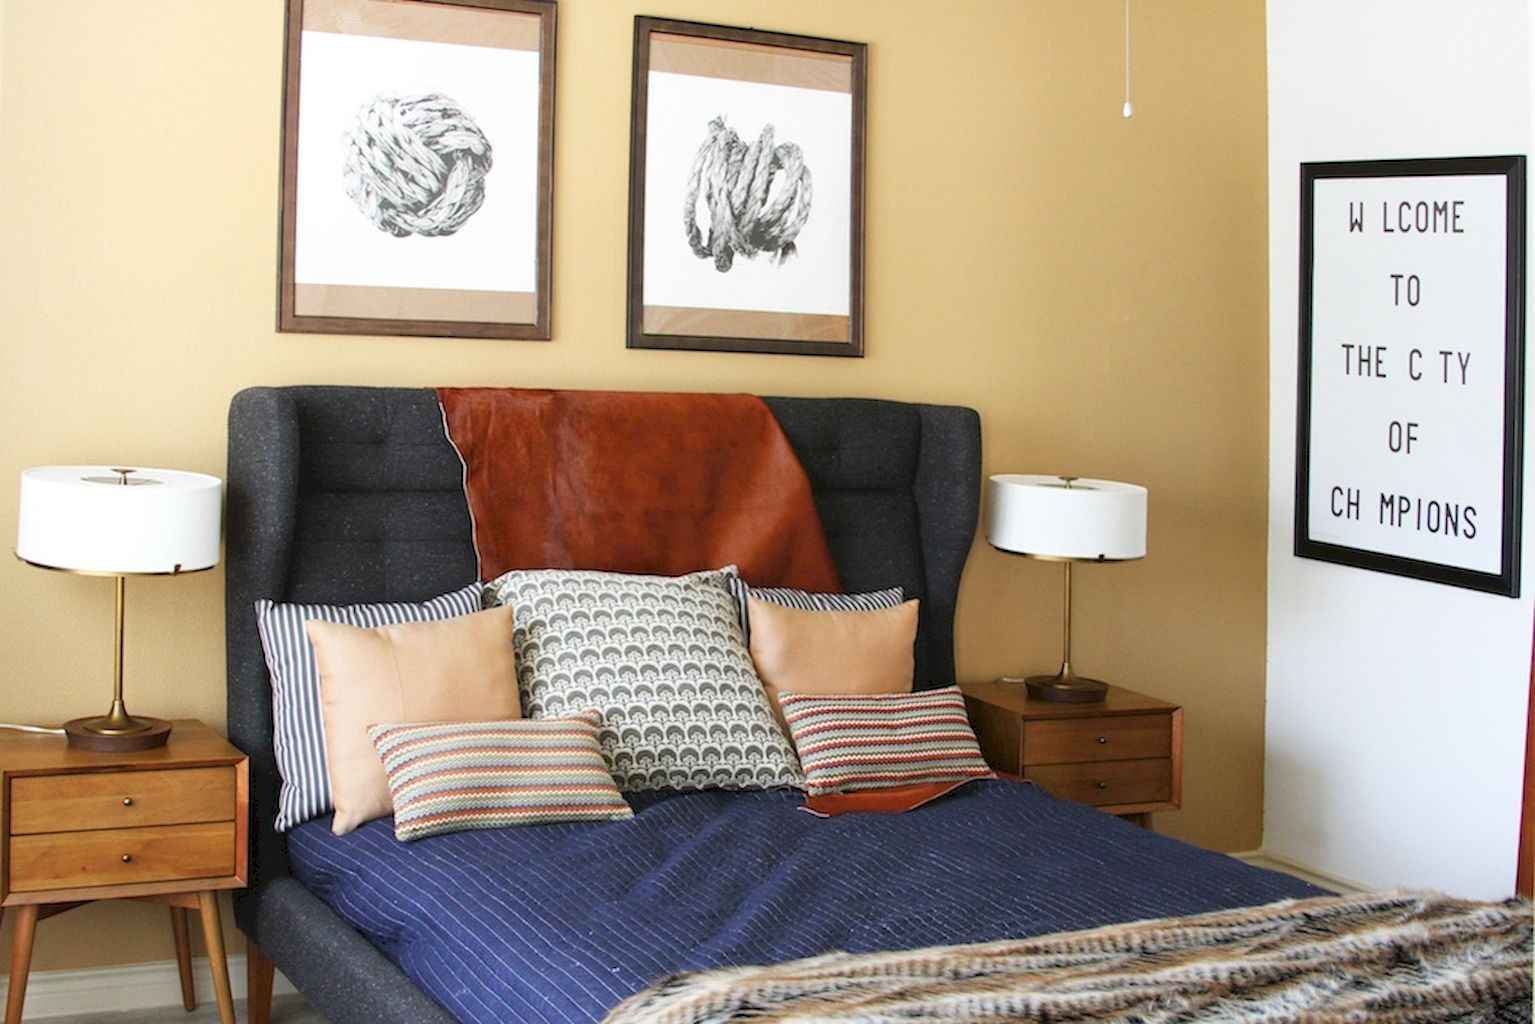 Couples first apartment decorating ideas (64)